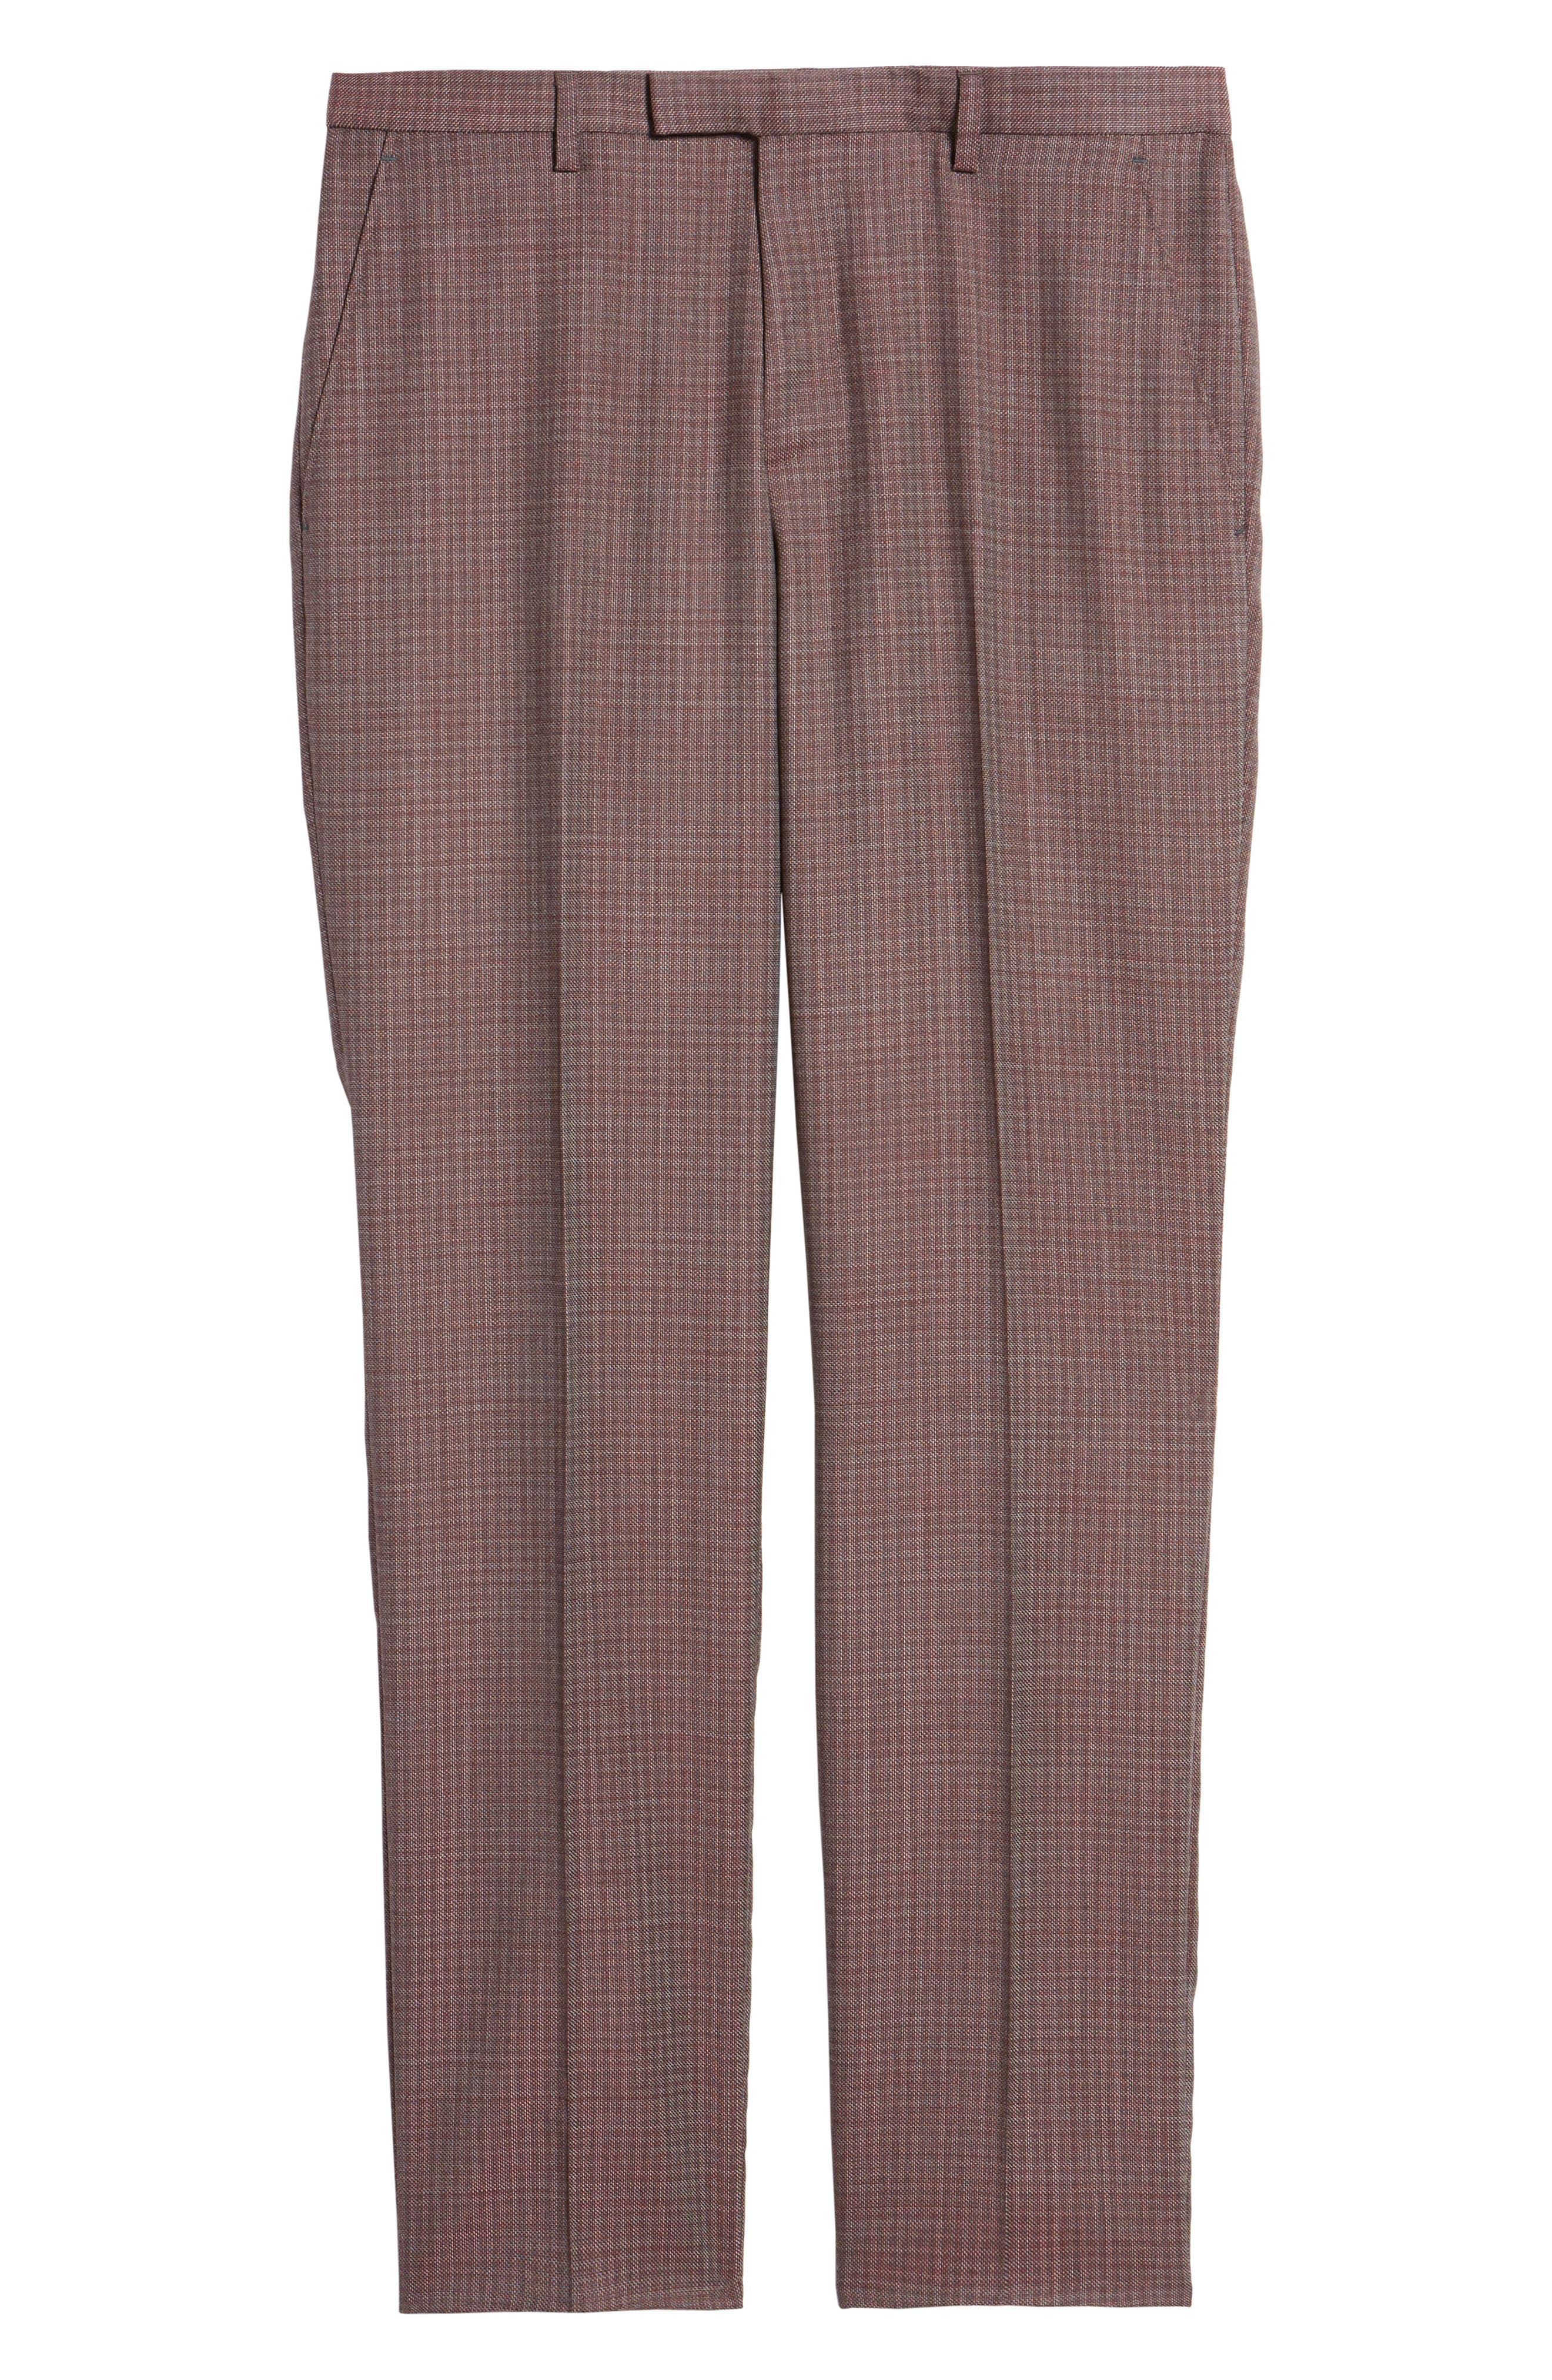 Leenon Flat Front Regular Fit Check Wool Trousers,                             Alternate thumbnail 6, color,                             Medium Red